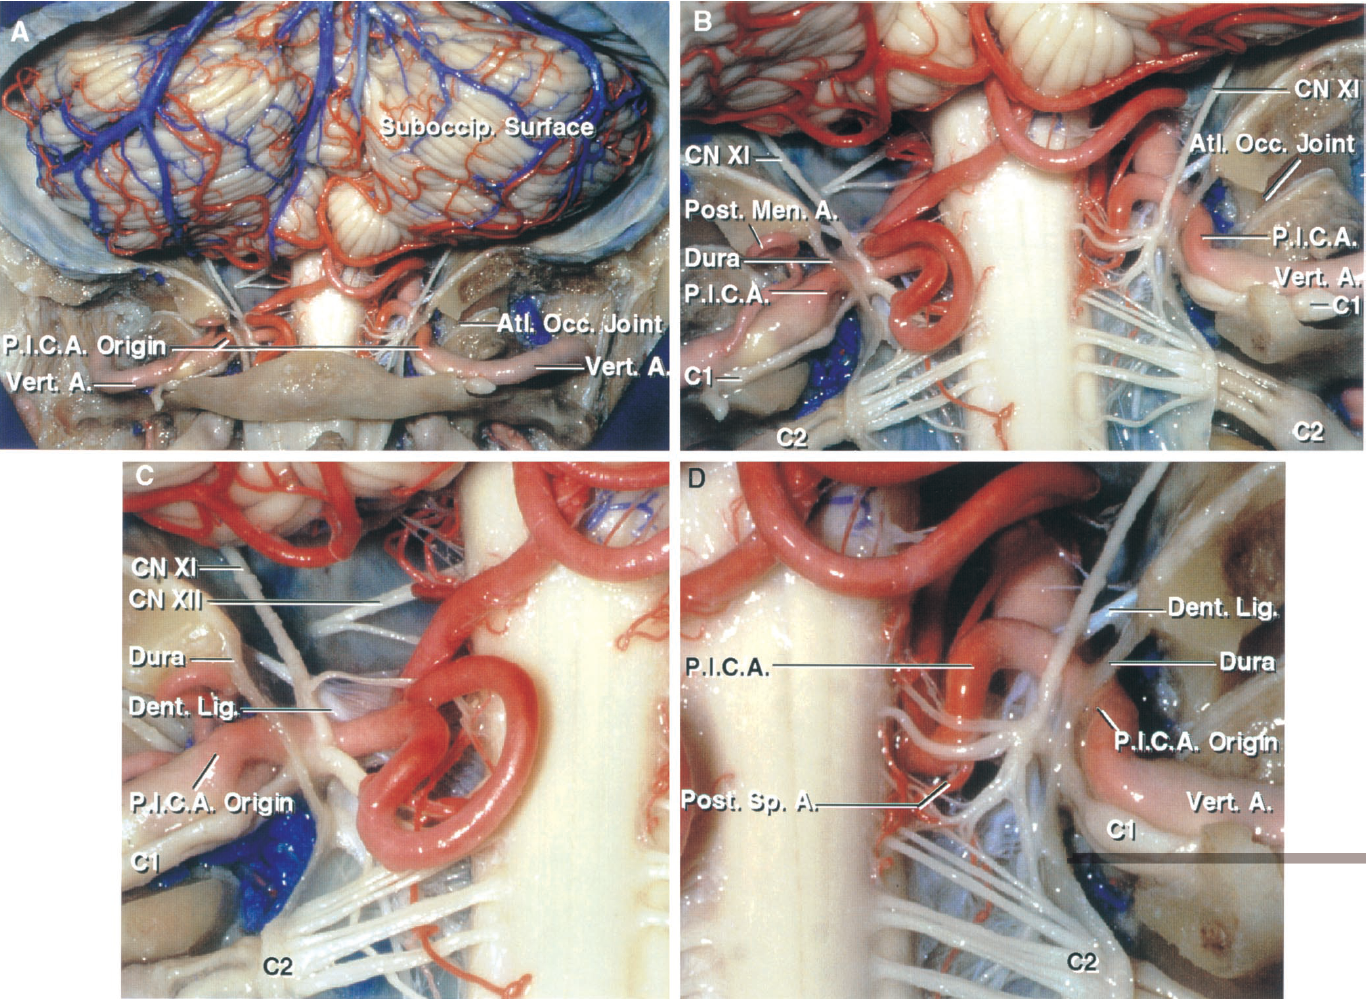 FIGURE 2.21. Bilateral PICAs with an extradural origin. A, both PICAs arise outside the dura as the vertebral arteries course behind the atlanto-occipital joints. The PICAs enter the dura at the level of the dorsolateral medulla and do not have an anterior medullary or a full lateral medullary segment. The left PICA loops downward in front of the posterior arch of the atlas. B, enlarged view. The left PICA gives off a posterior meningeal artery, penetrates the dura by passing through the dural cuff around the vertebral artery, and loops downward behind the accessory nerve and the C1 and C2 roots before ascending to enter the cerebellomedullary fissure. The right PICA passes through the dura and courses along the side of the medulla in front of the rootlets of the accessory nerve. C, the left PICA penetrates the dural cuff with the vertebral artery and the C1 nerve root. The accessory nerve passes posterior to both the vertebral artery and the PICA. The rostral attachment of the dentate ligament ascends between the PICA and the vertebral artery to attach to the dura at the level of the foramen magnum. D, the C1 nerve root passes through the dural cuff with the vertebral artery and the PICA. The accessory nerve ascends posterior to both the vertebral artery and PICA. A small posterior spinal artery arises from the PICA and courses along the dorsolateral aspect of the spinal cord. A., artery; Atl., atlanto; CN, cranial nerve; Dent., dentate; Lig., ligament; Men., meningeal; Occ., occipital; P.I.C.A., posteroinferior cerebellar artery; Post., posterior; Sp., spinal; Suboccip., suboccipital; Vert., vertebral.